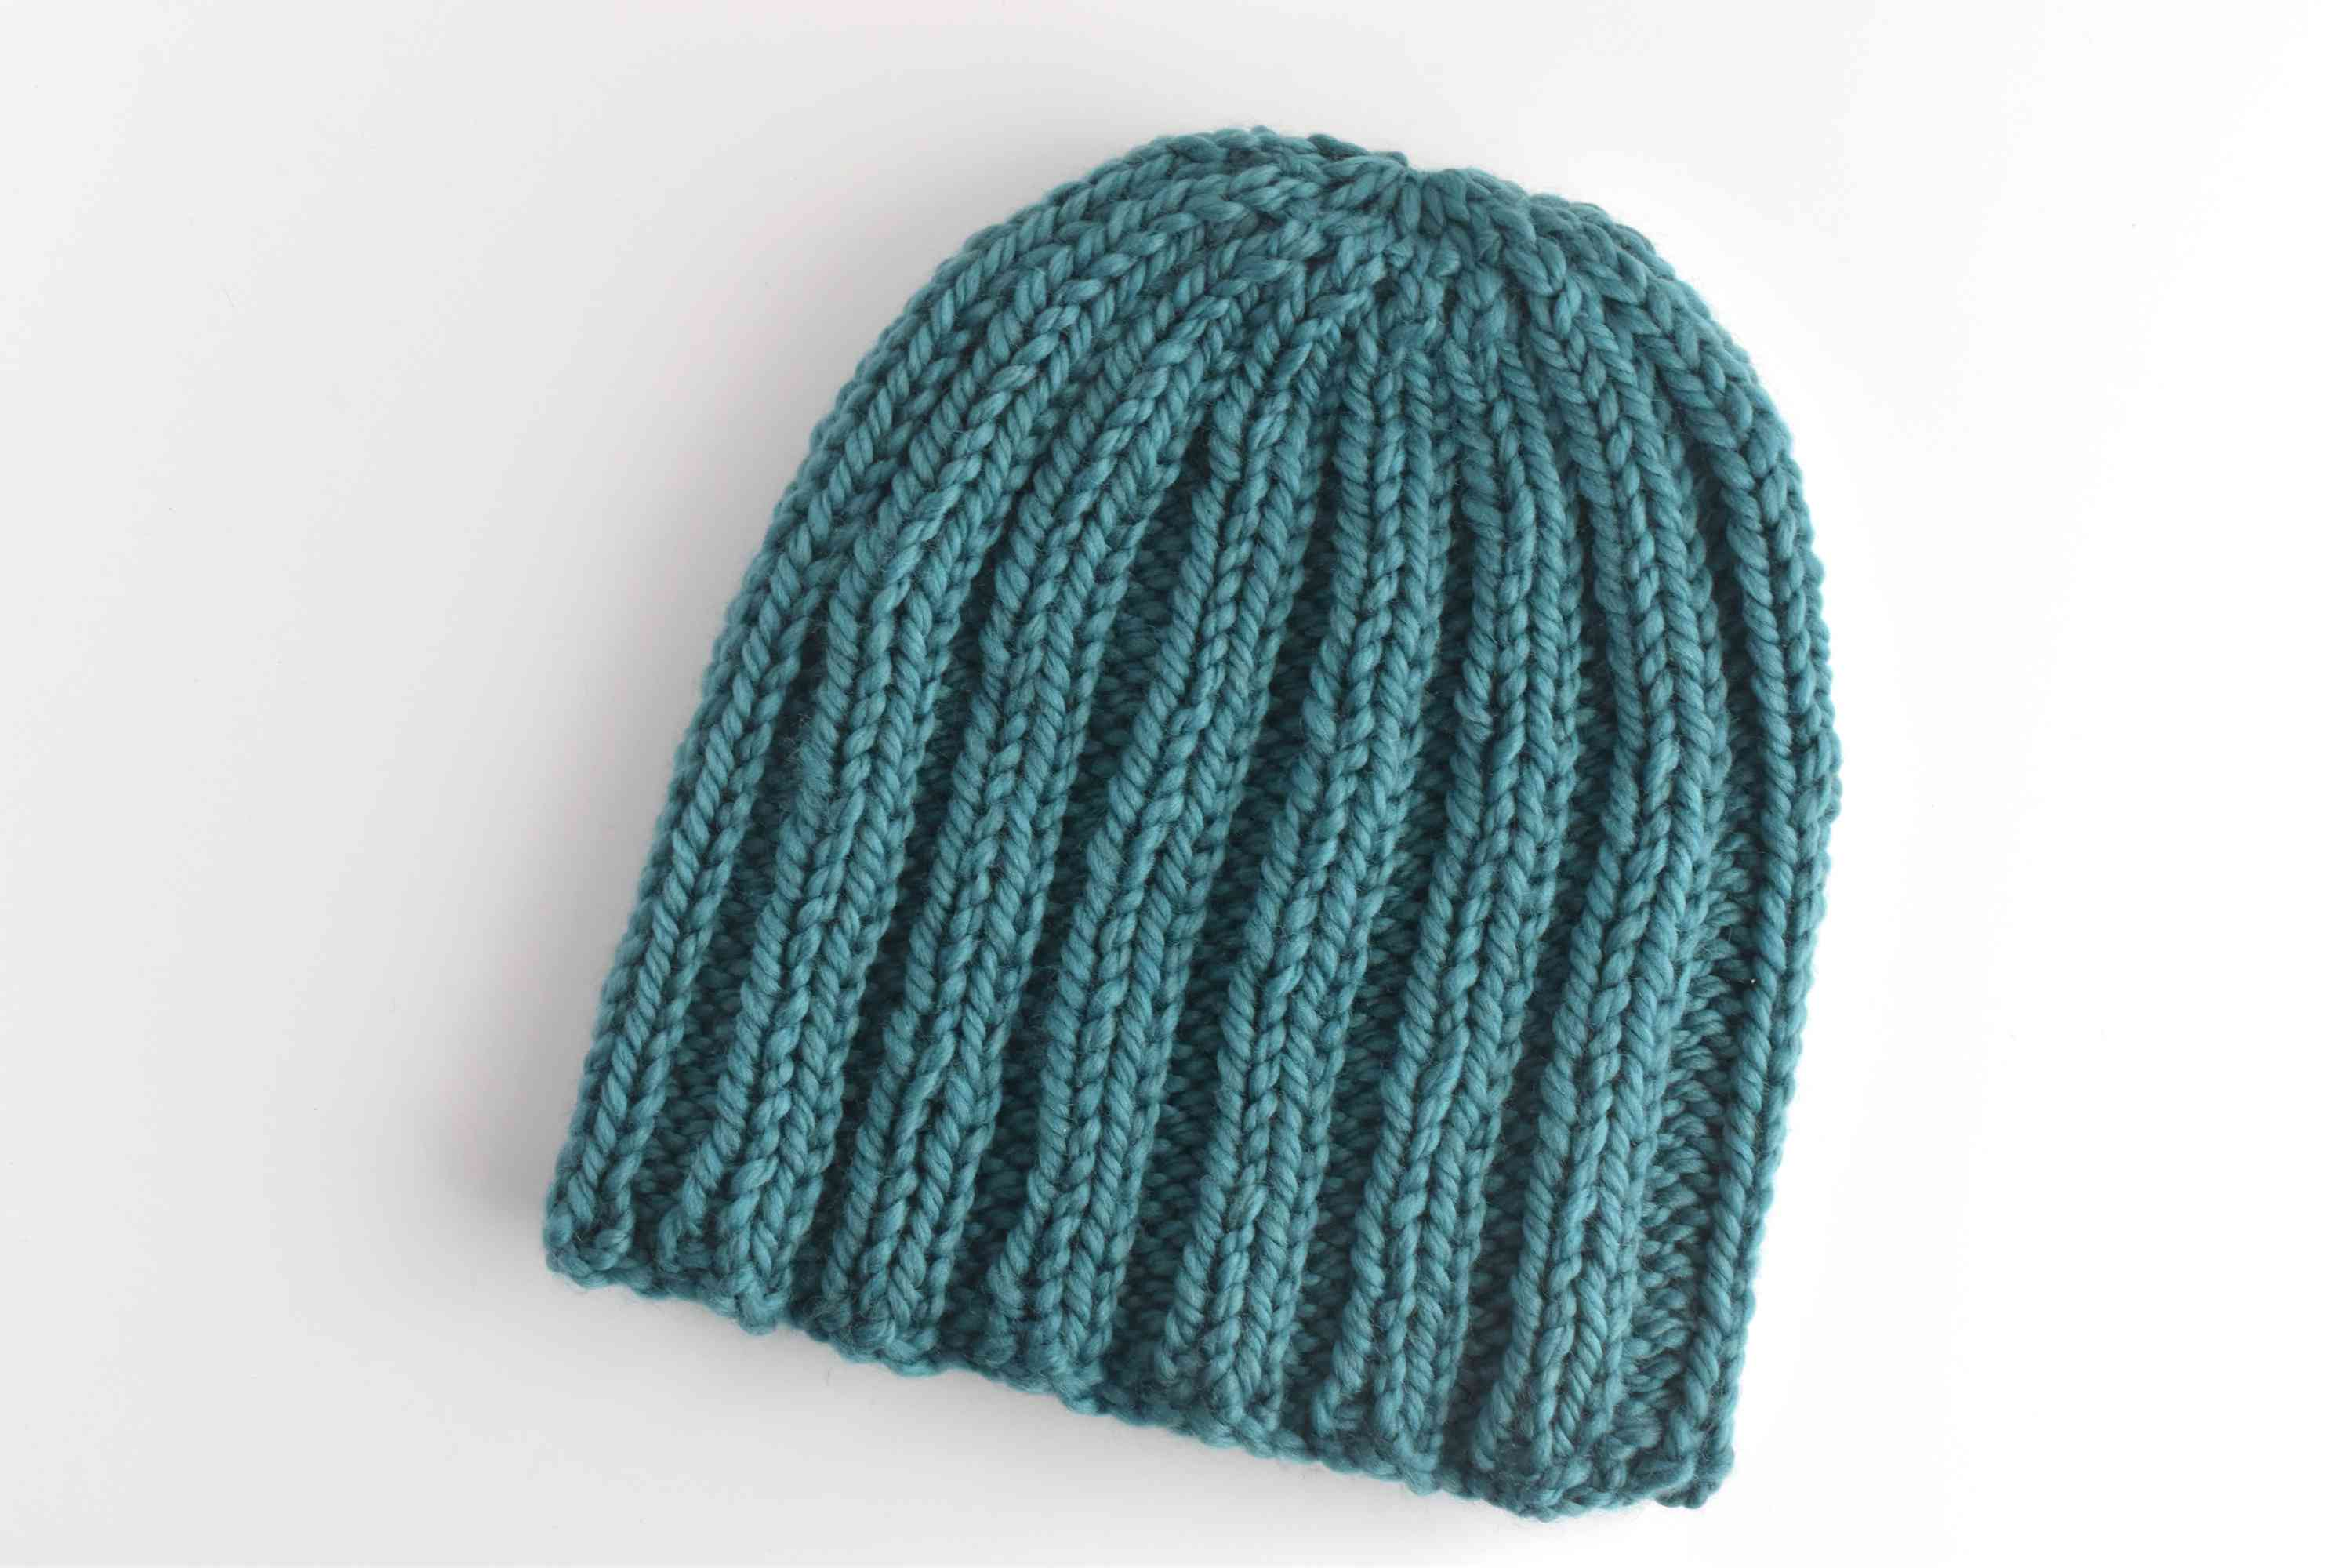 Completed chunky ribbed knit hat